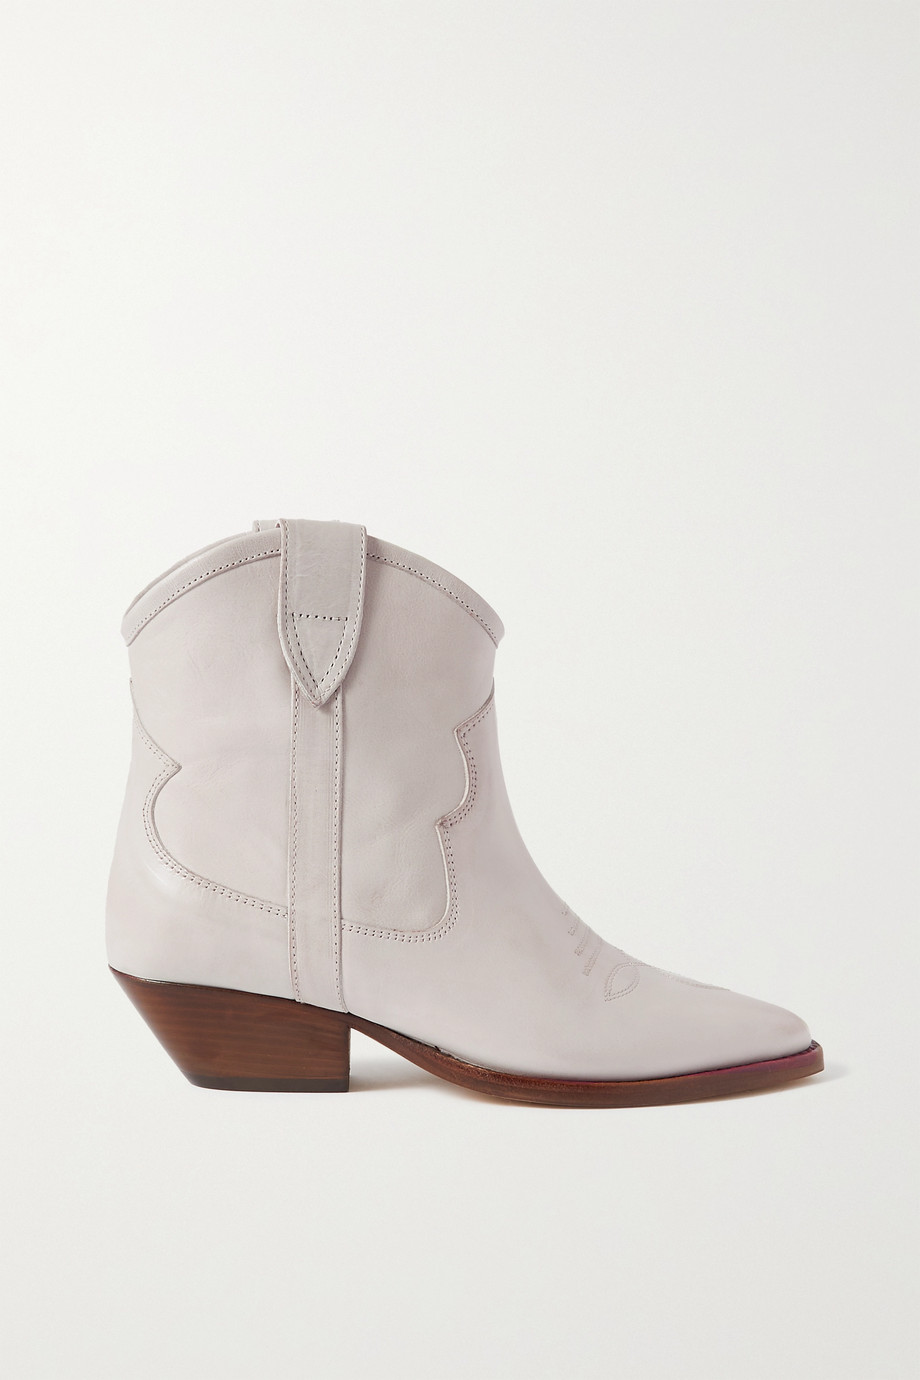 ISABEL MARANT Demar leather ankle boots